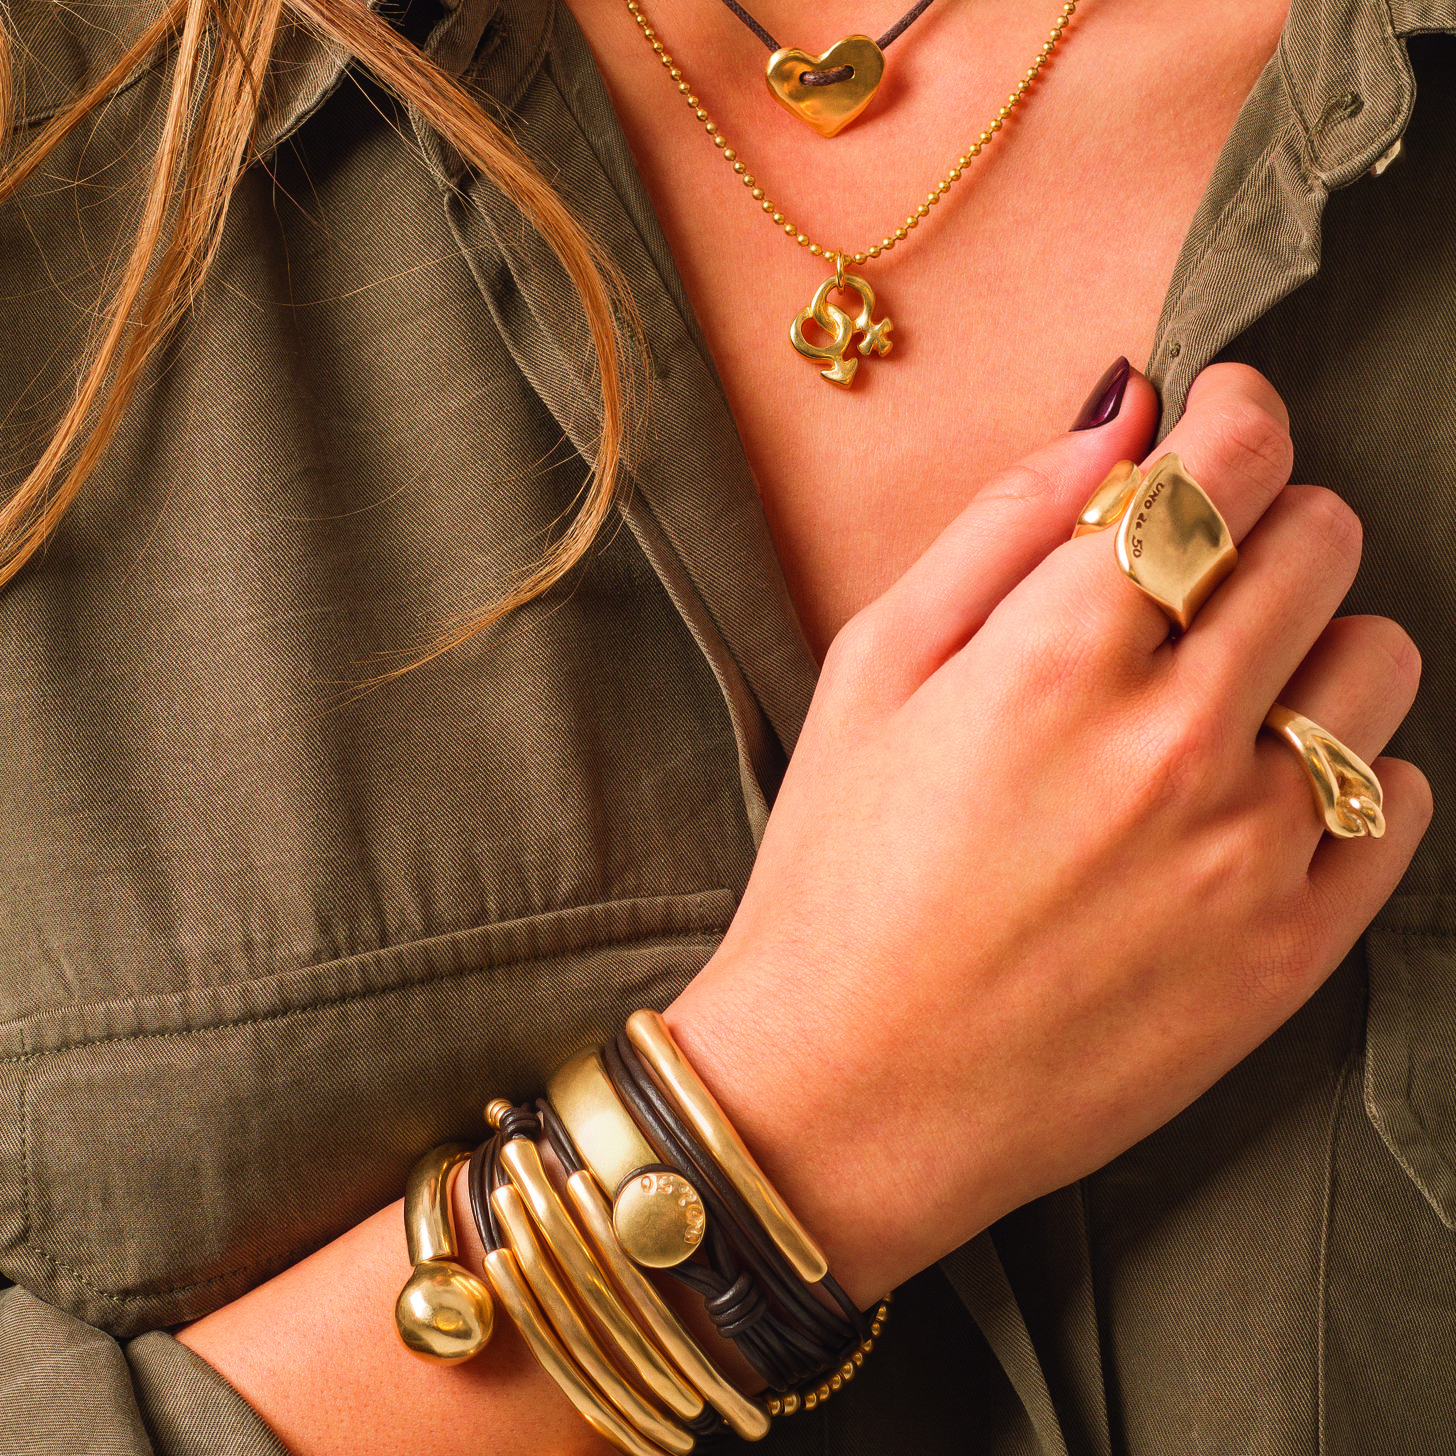 Unode50 Gold My Style Pinterest Gold Urban jewelry and Urban